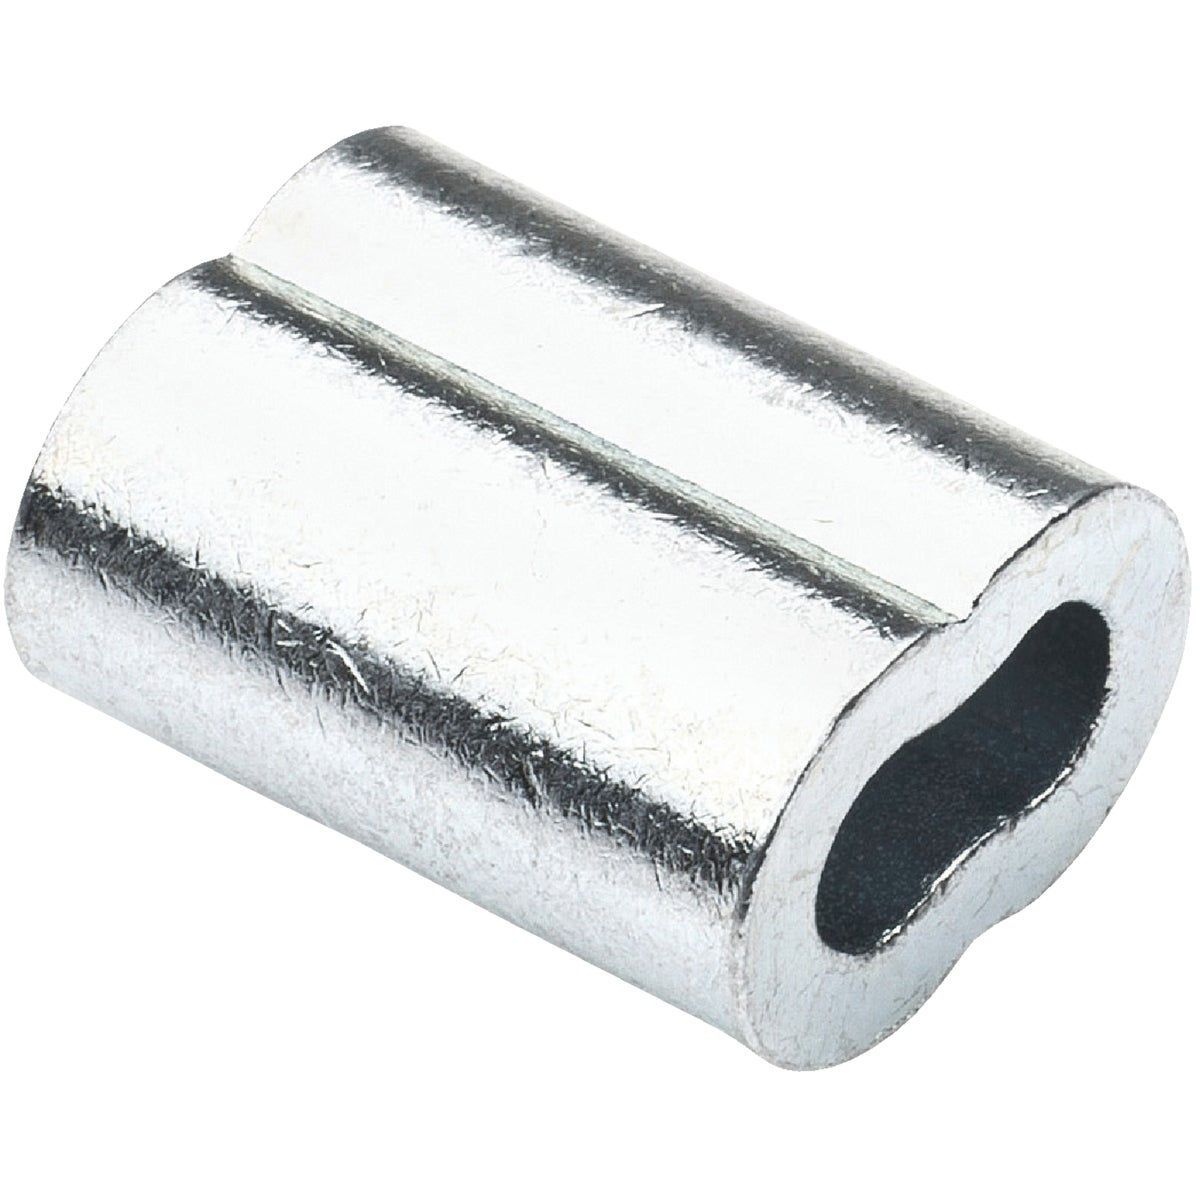 50PK 3/32 CABLE FERRULE - 7670714 by Cooper Campbell Apex